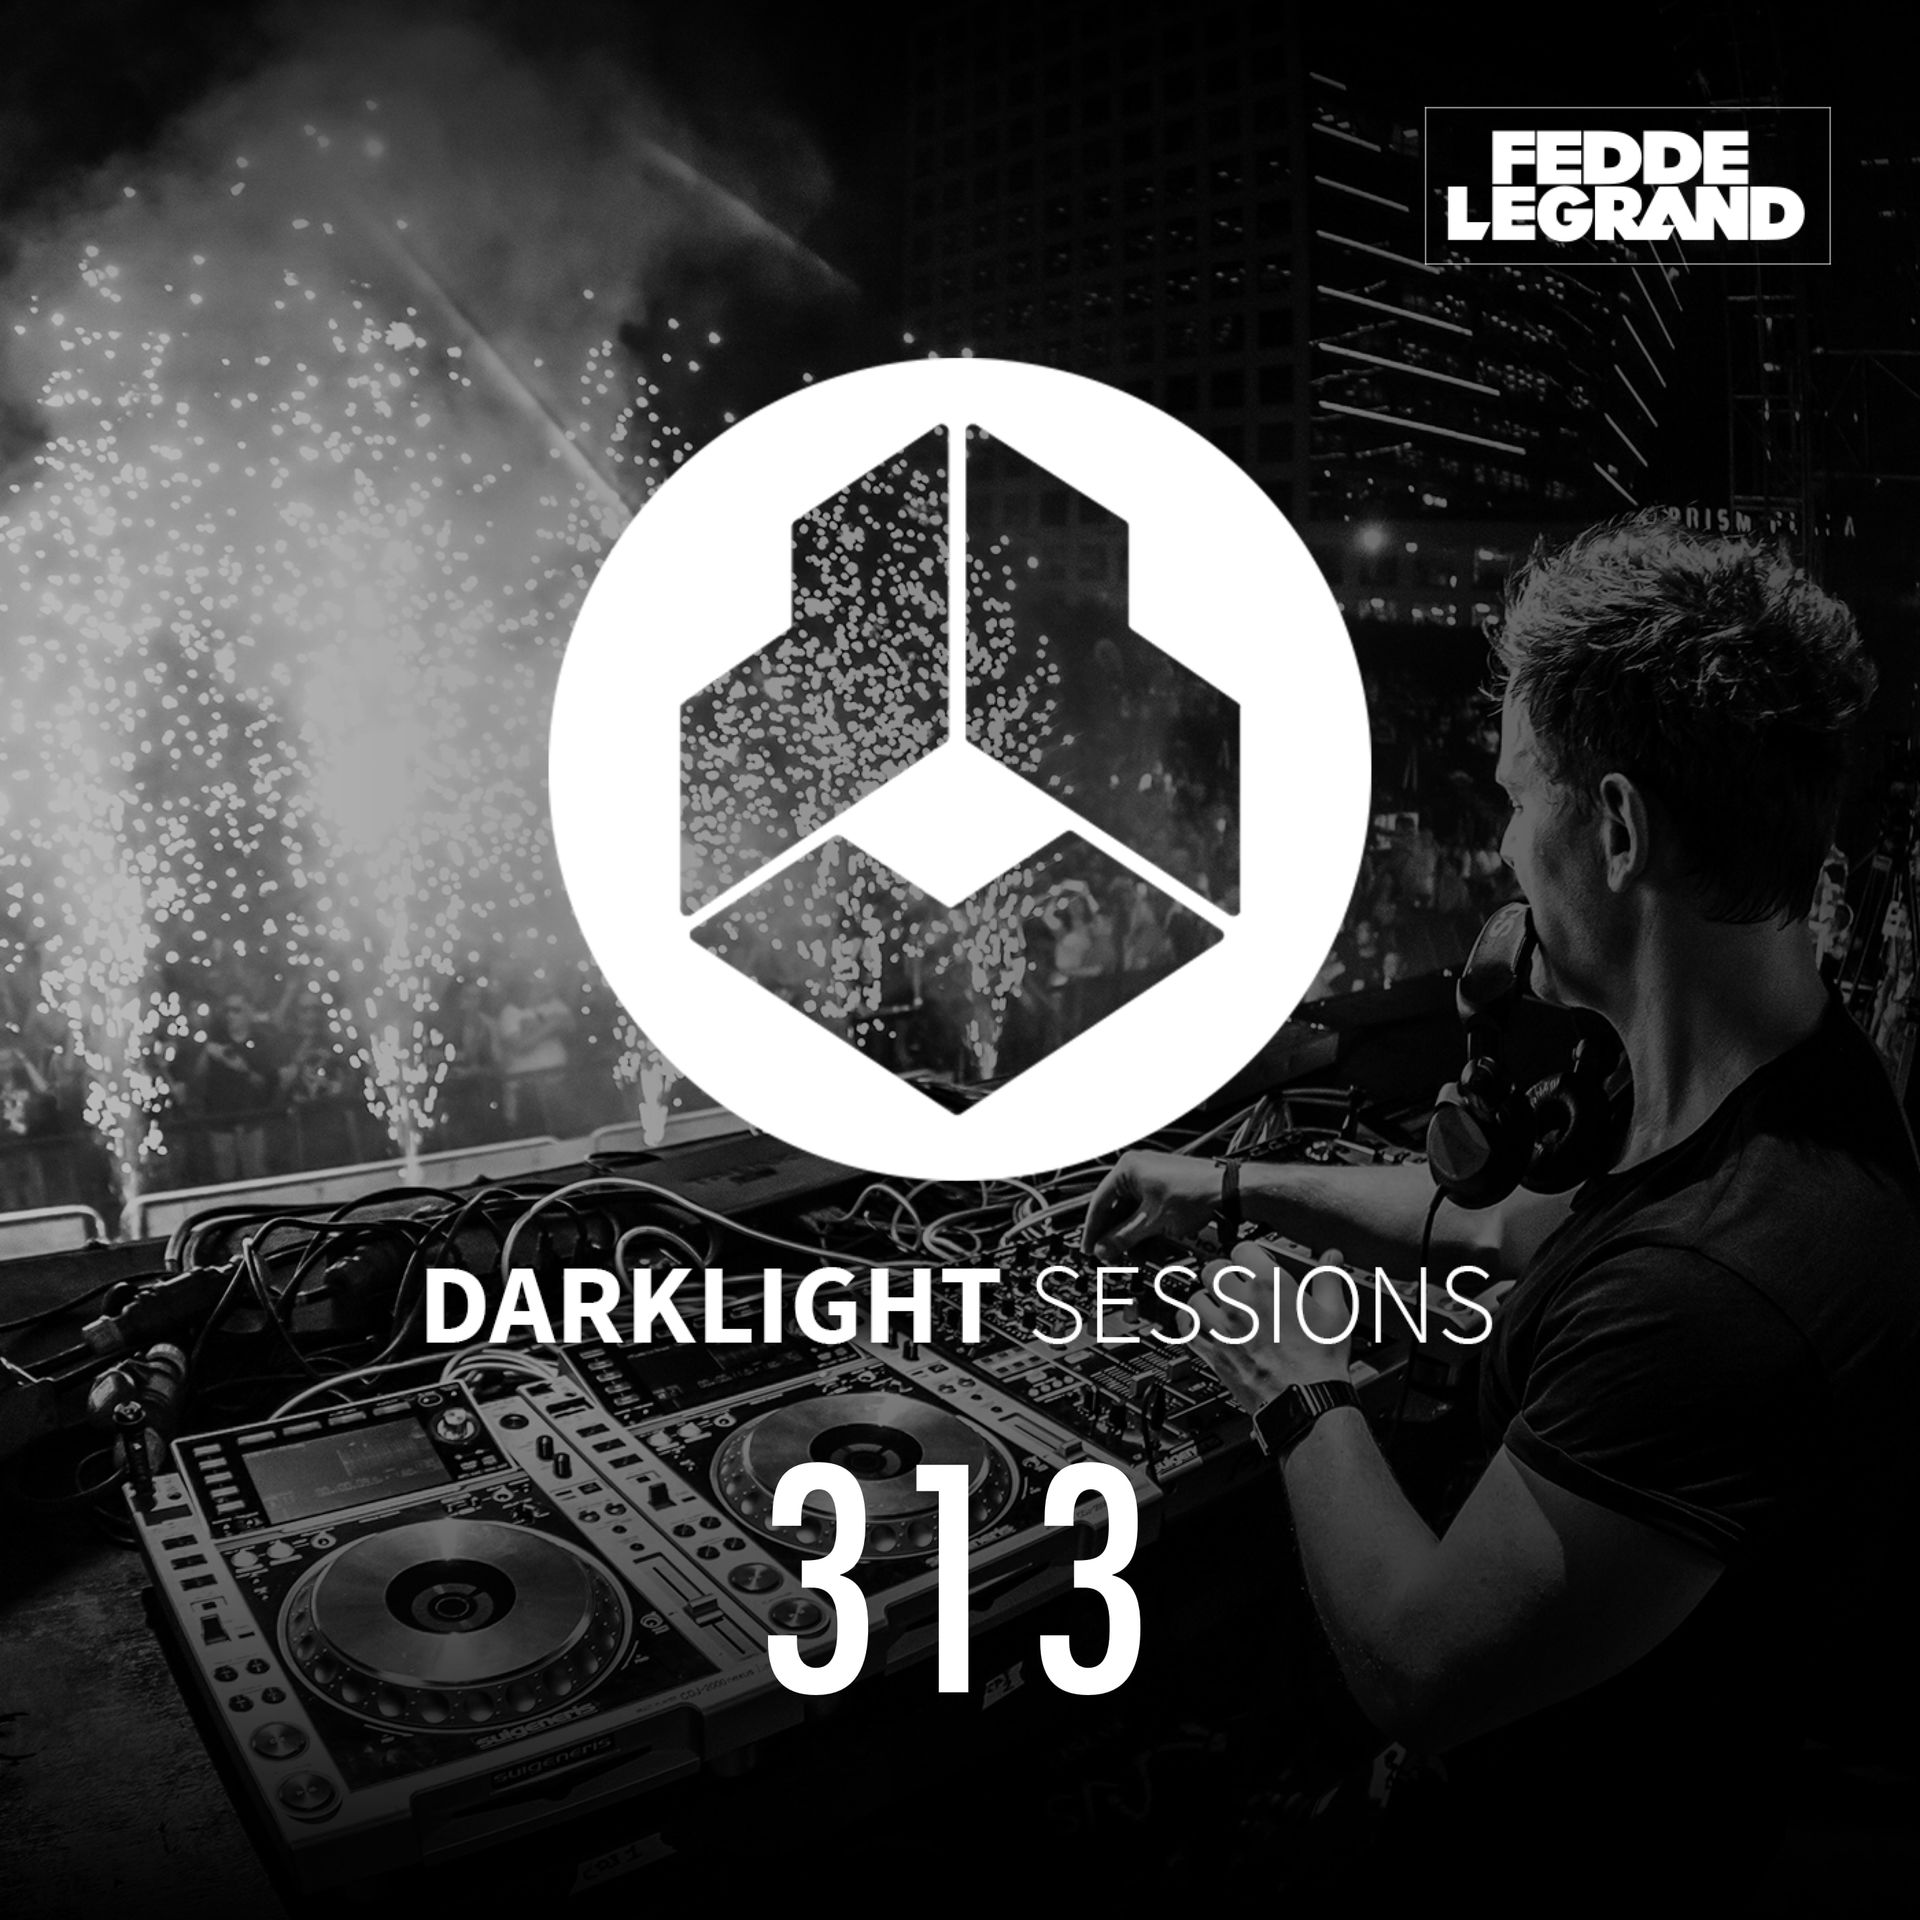 Darklight Sessions 313